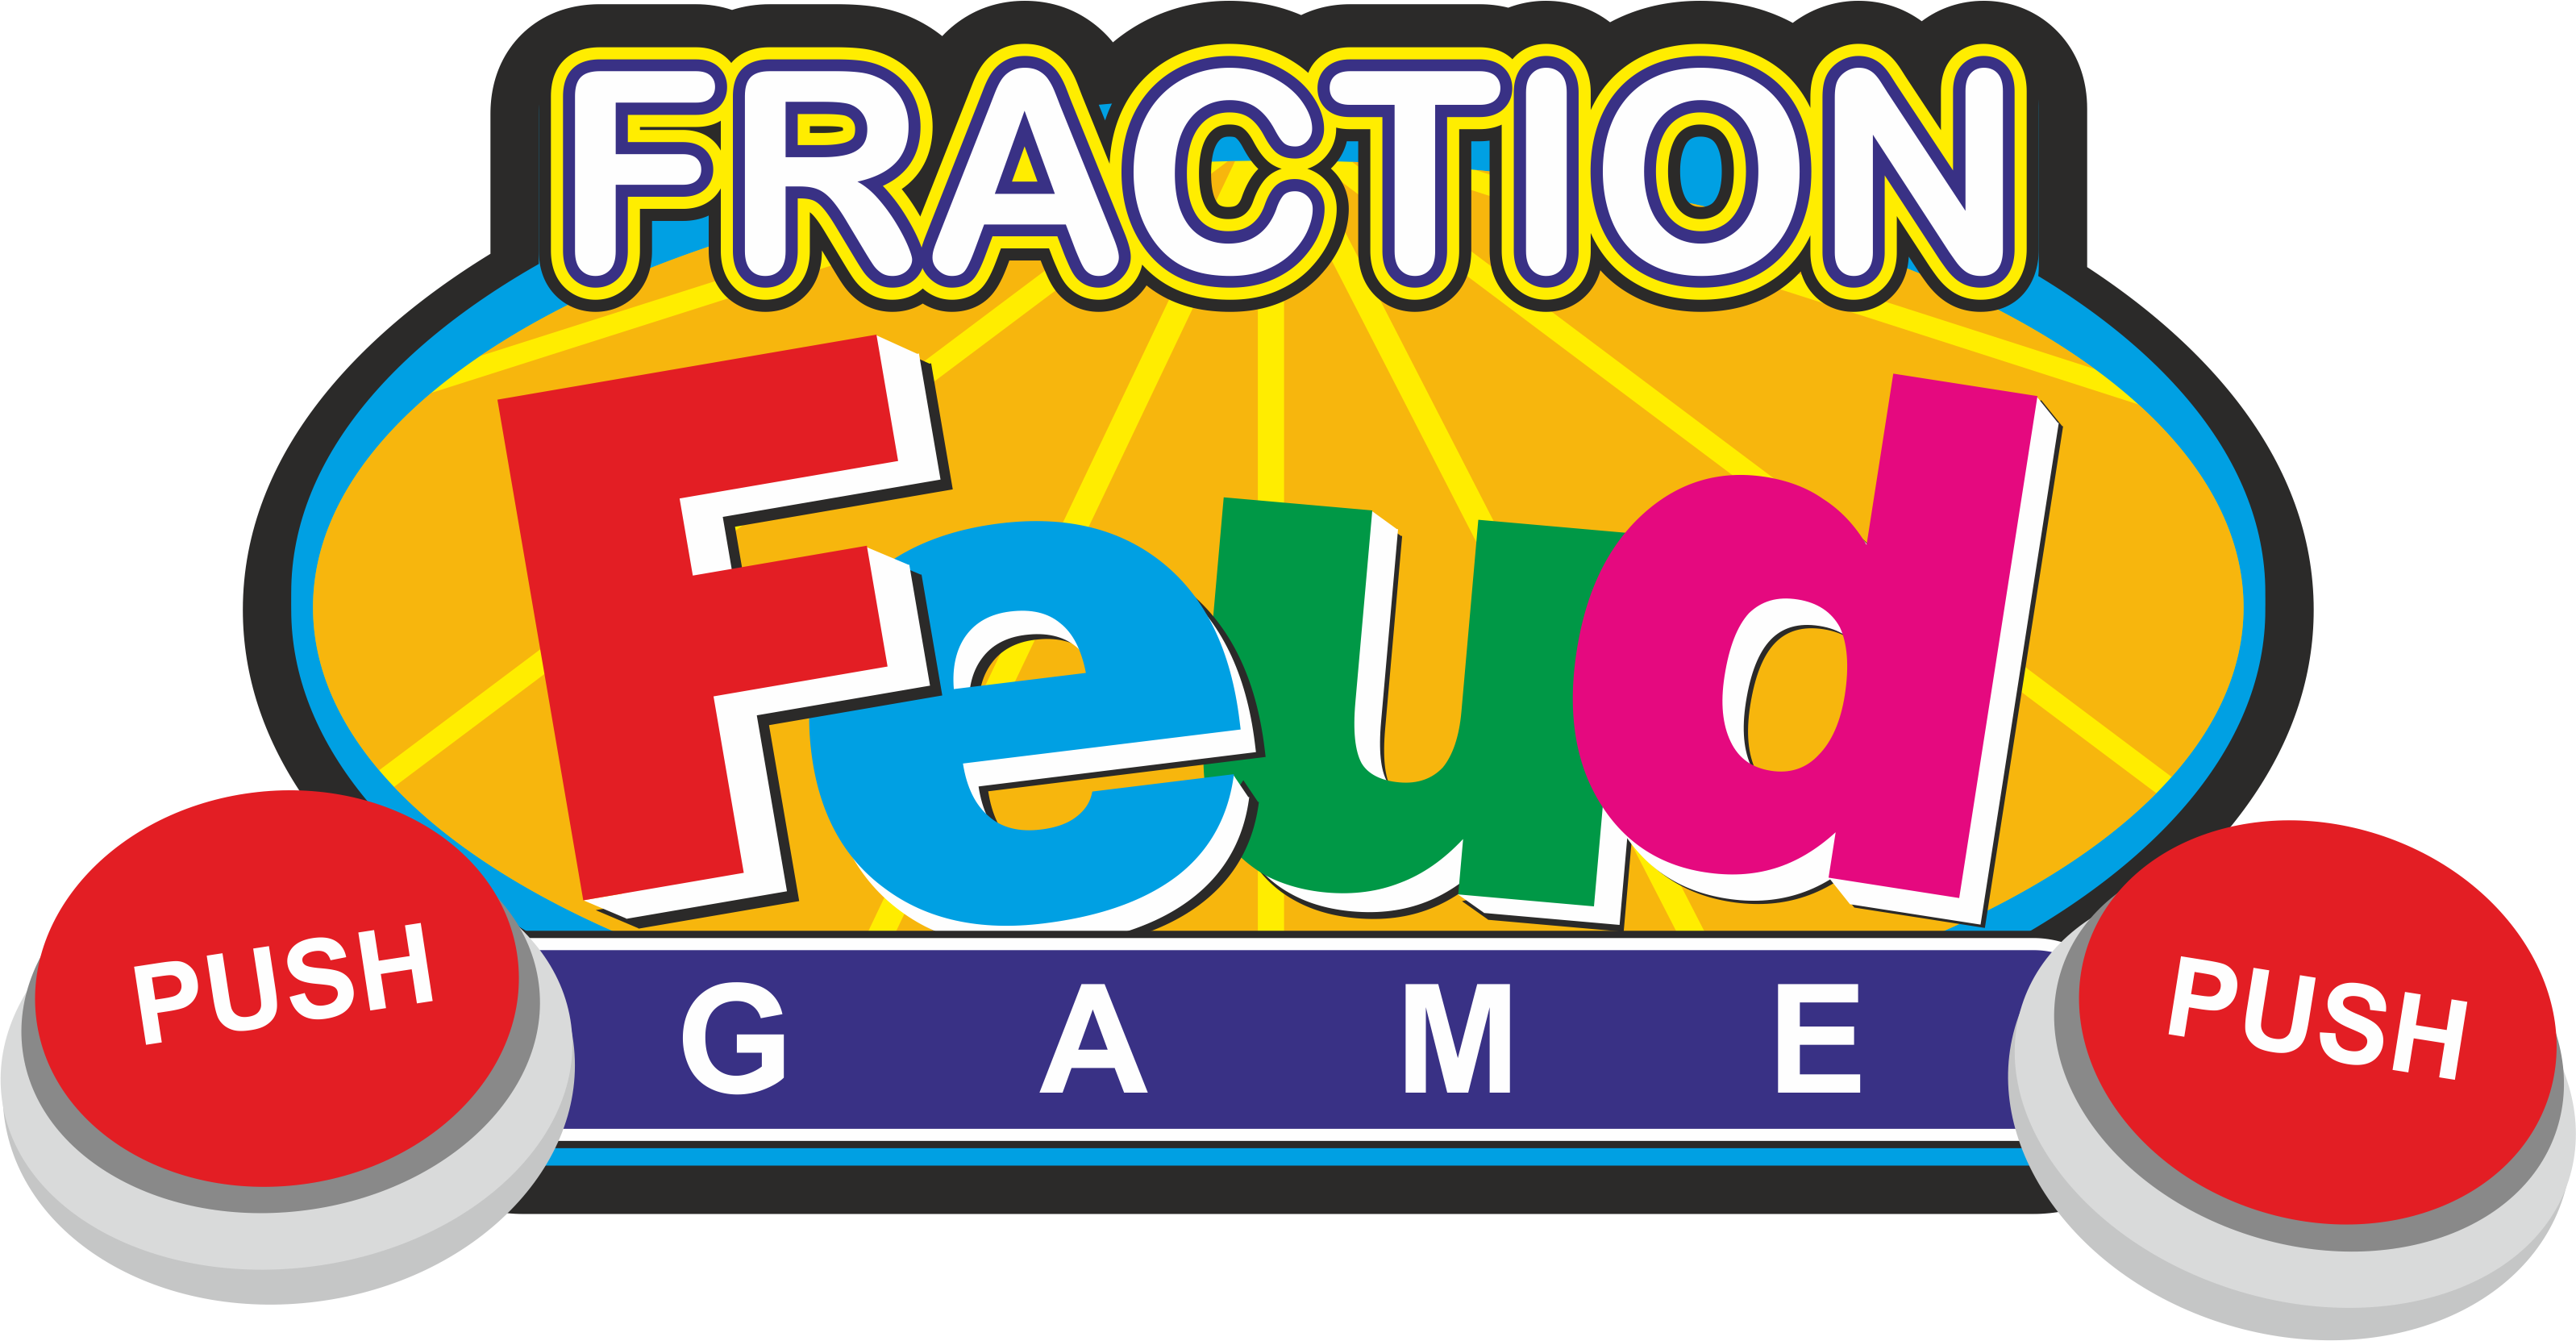 Feud comparing fractions game. Fraction clipart improper fraction